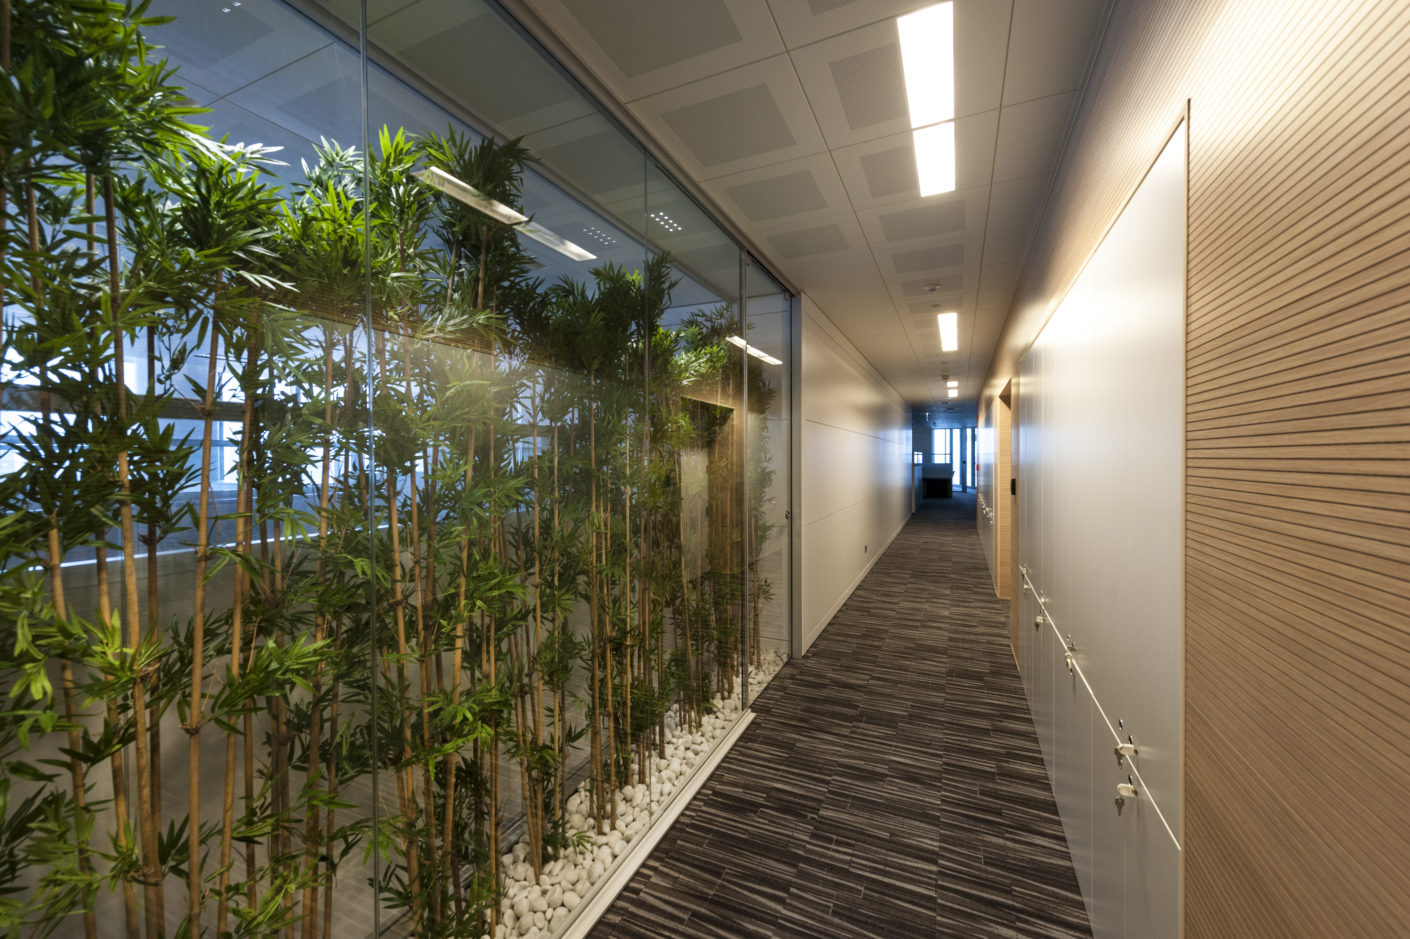 Green zones on the floors with open space offices form an exciting contrast to the architecture.